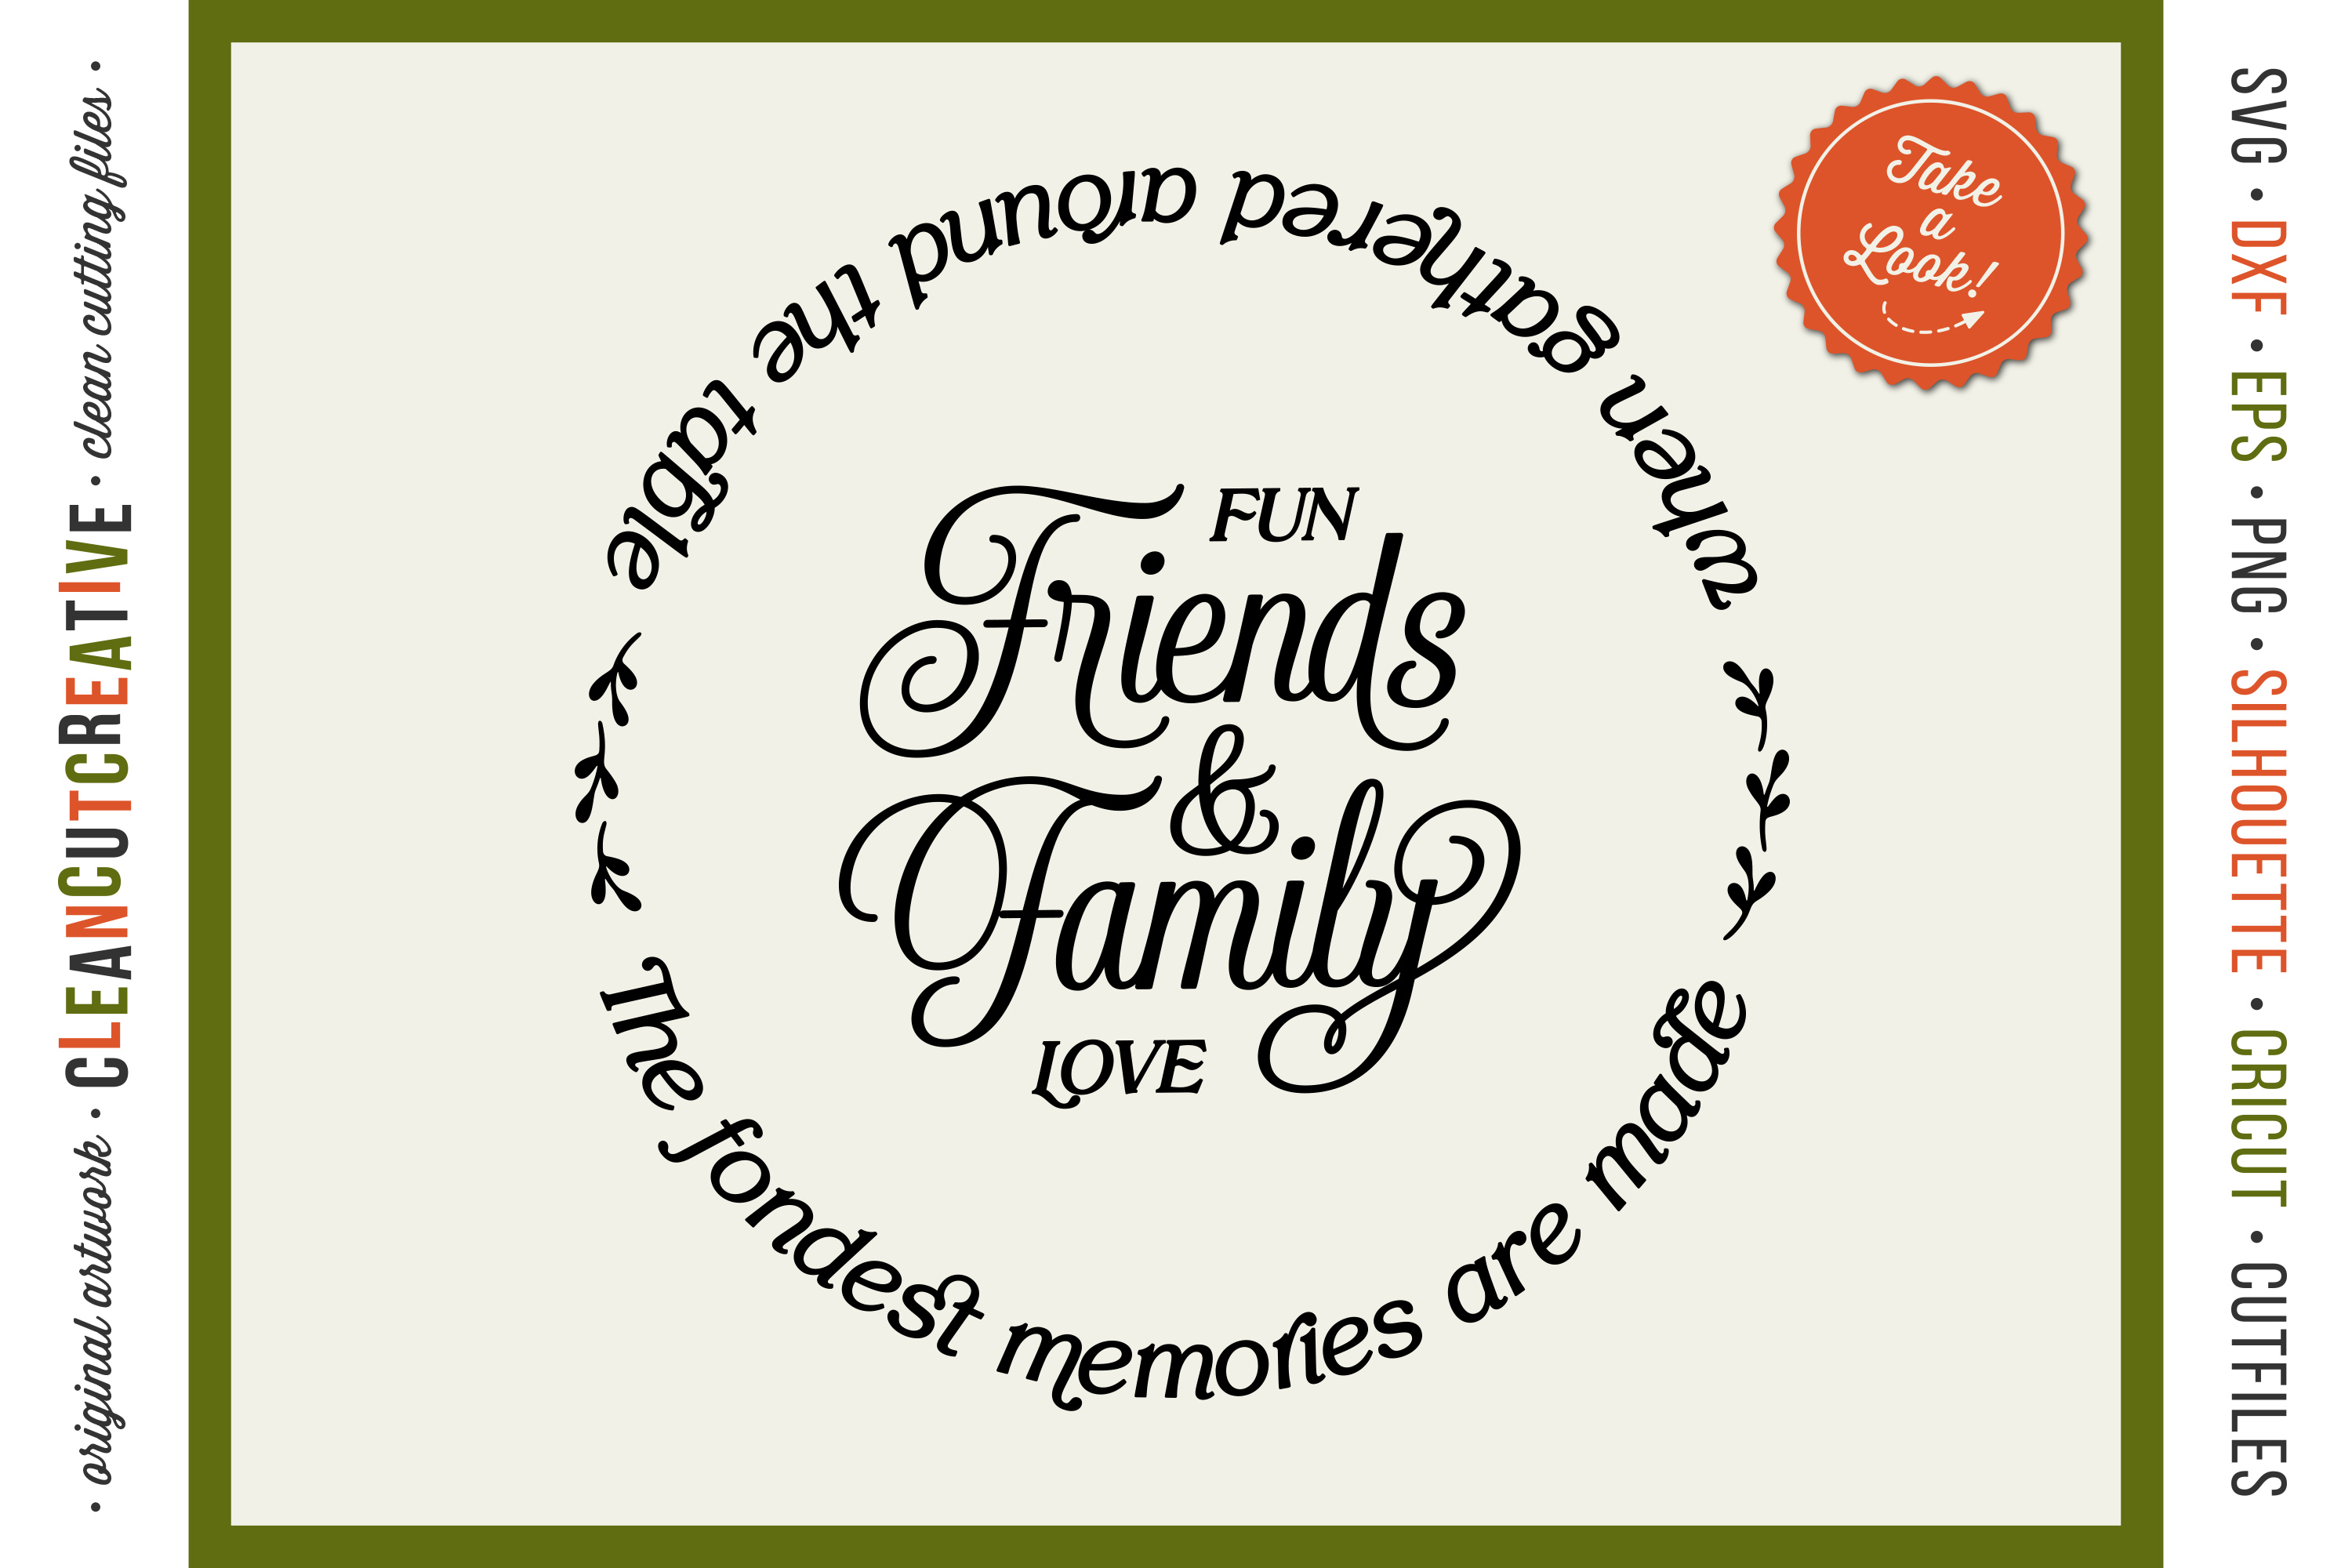 Friends & Family Fondest Memories Gathered Table - round svg example image 1